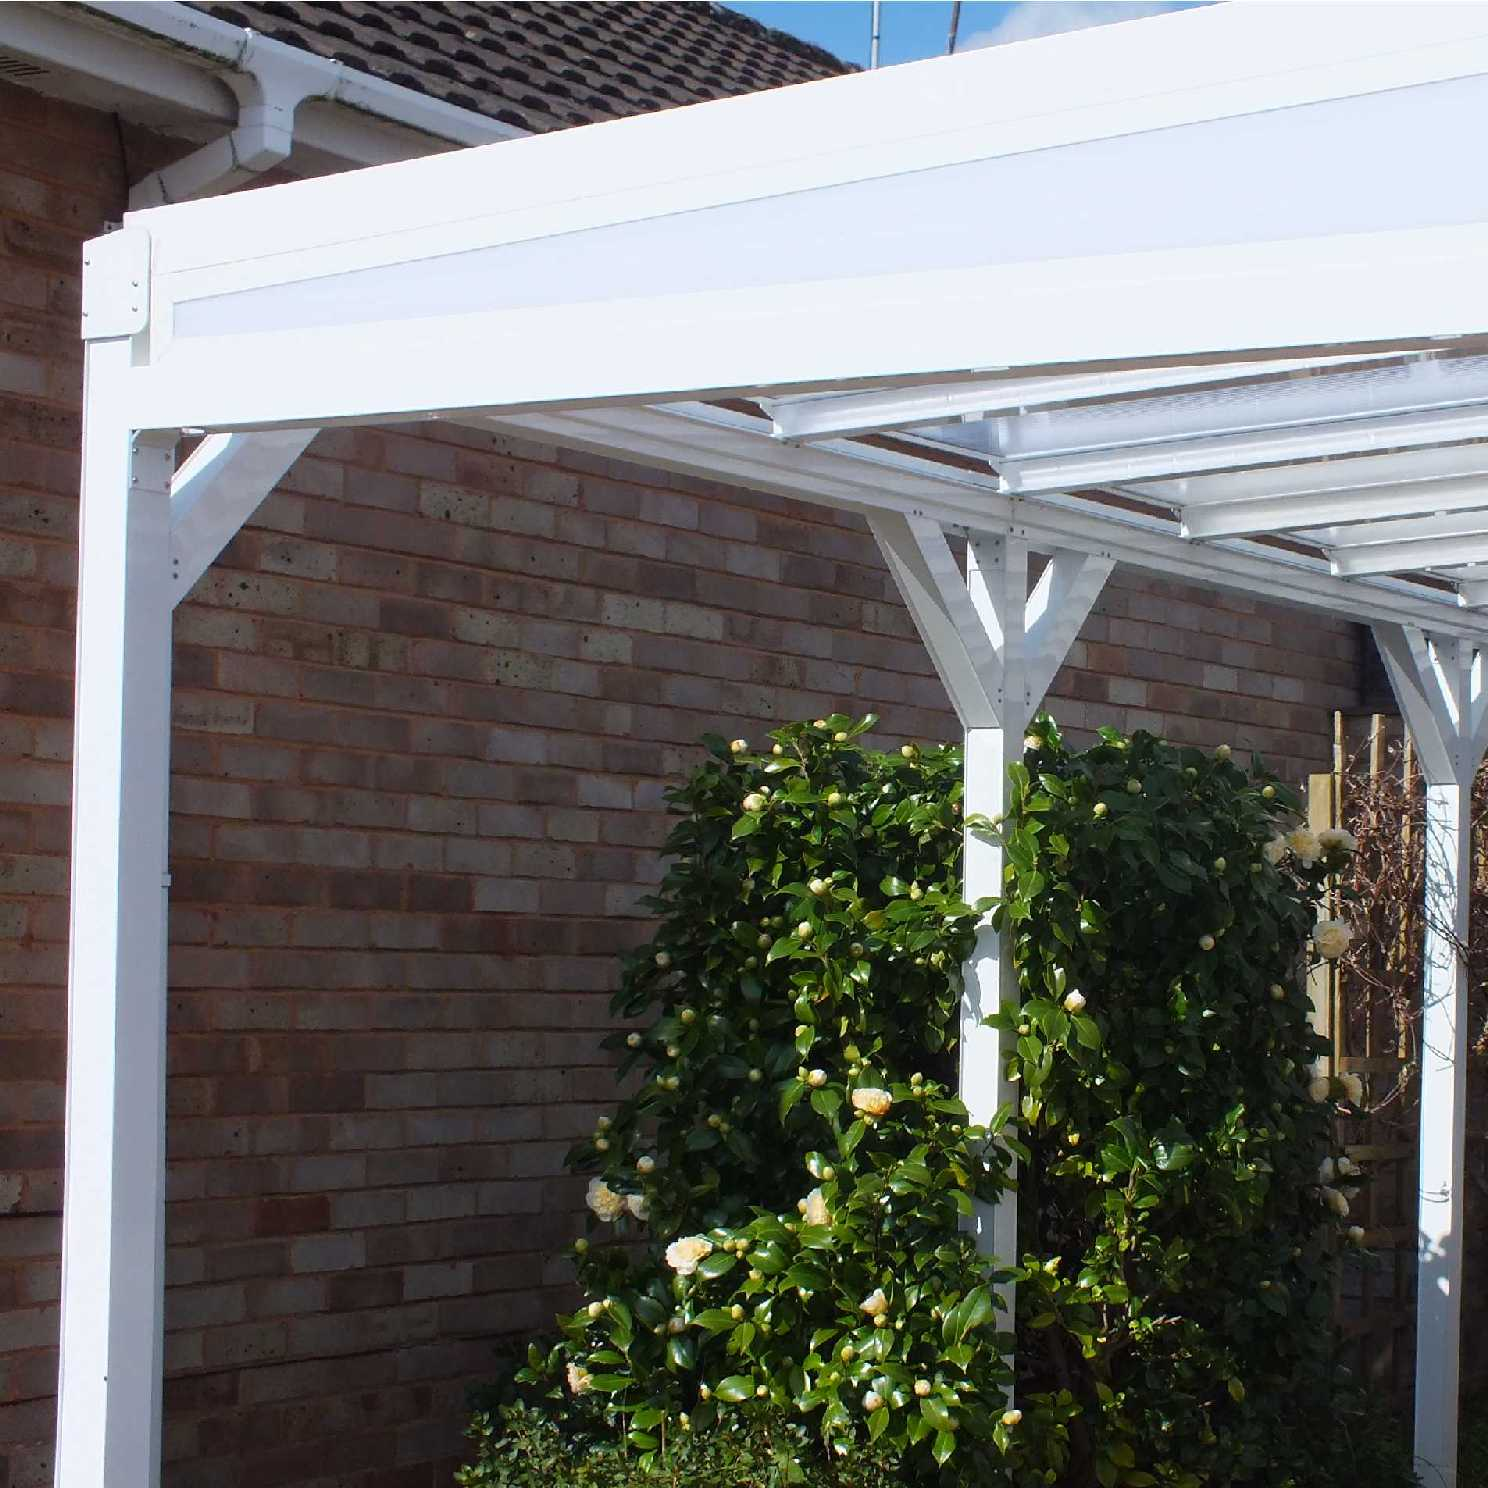 Omega Smart White Lean-To Canopy with 16mm Polycarbonate Glazing - 8.4m (W) x 4.5m (P), (4) Supporting Posts from Omega Build